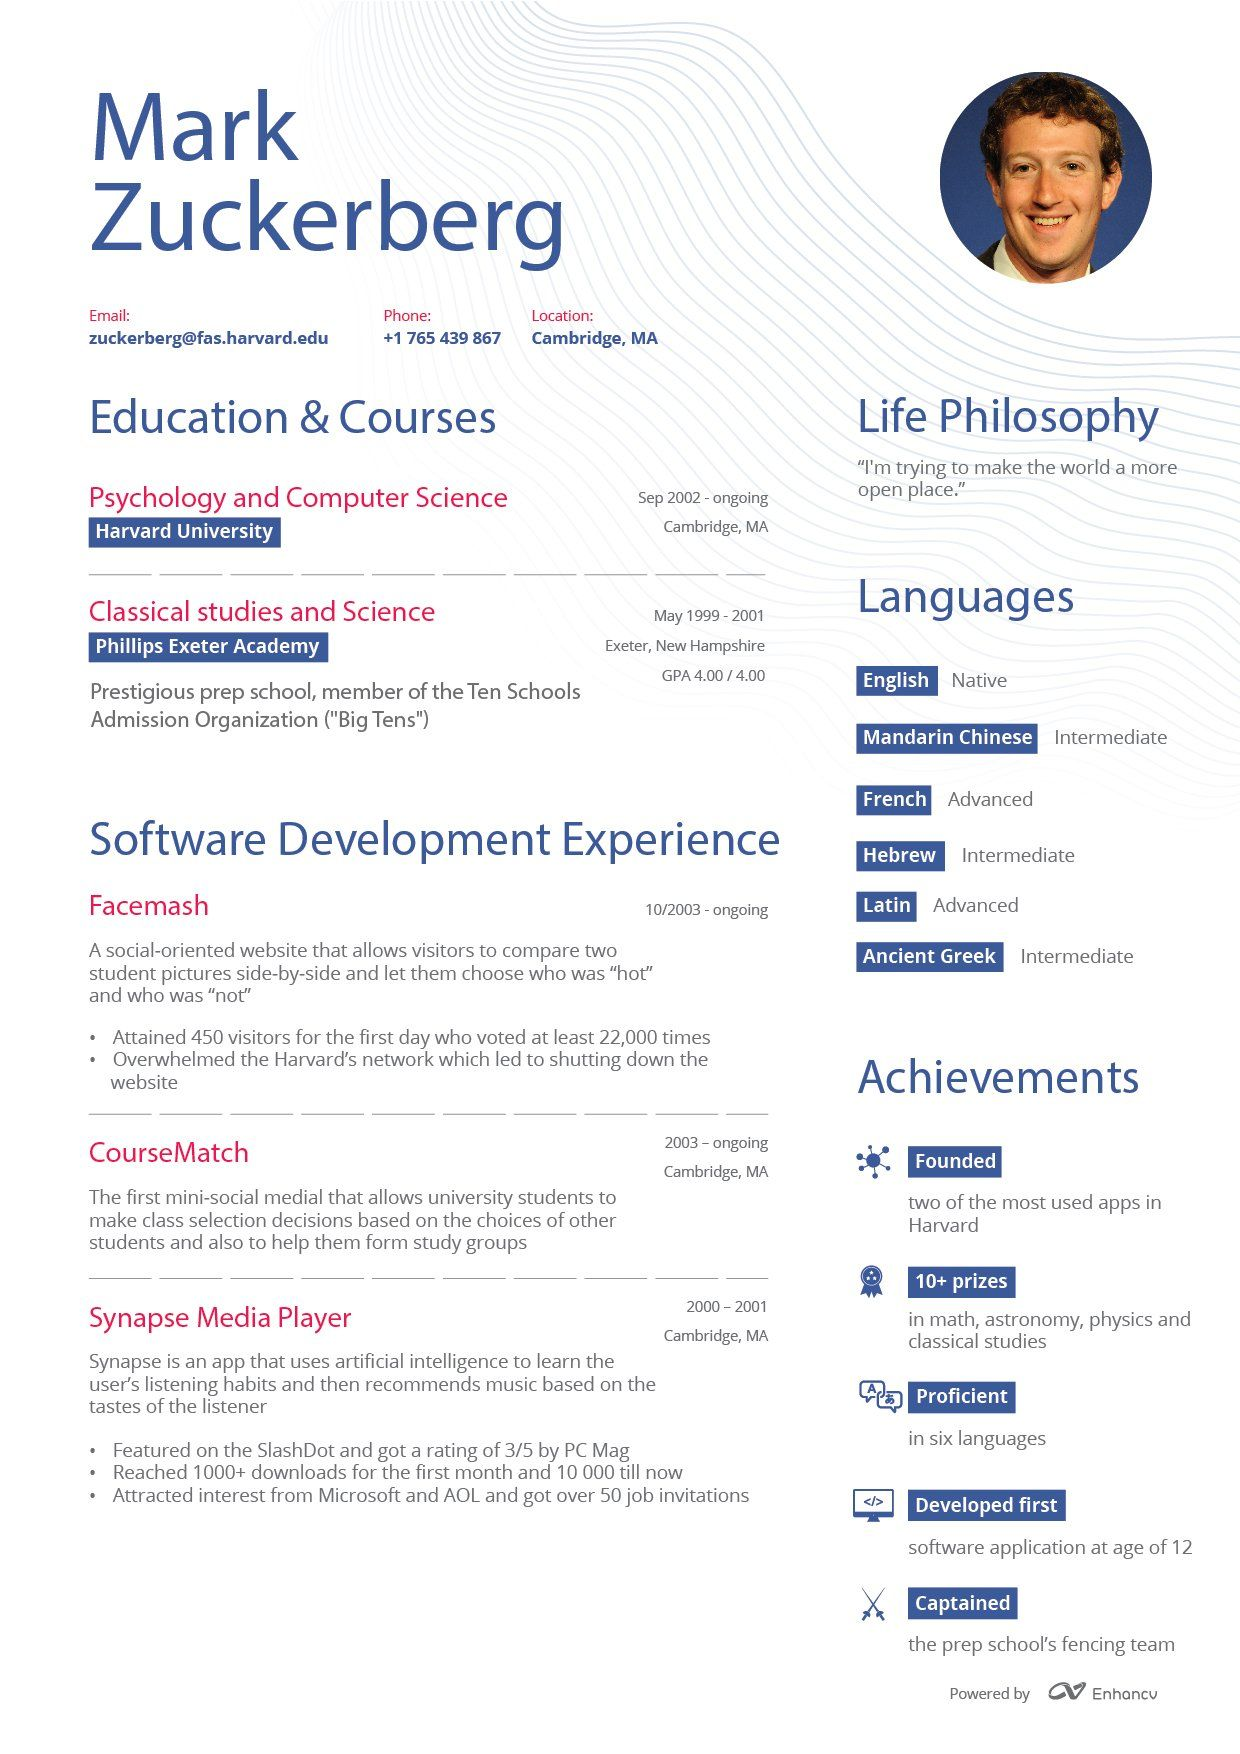 famous ceo resumes equations solver 10 best images about refer on teacher resumes action